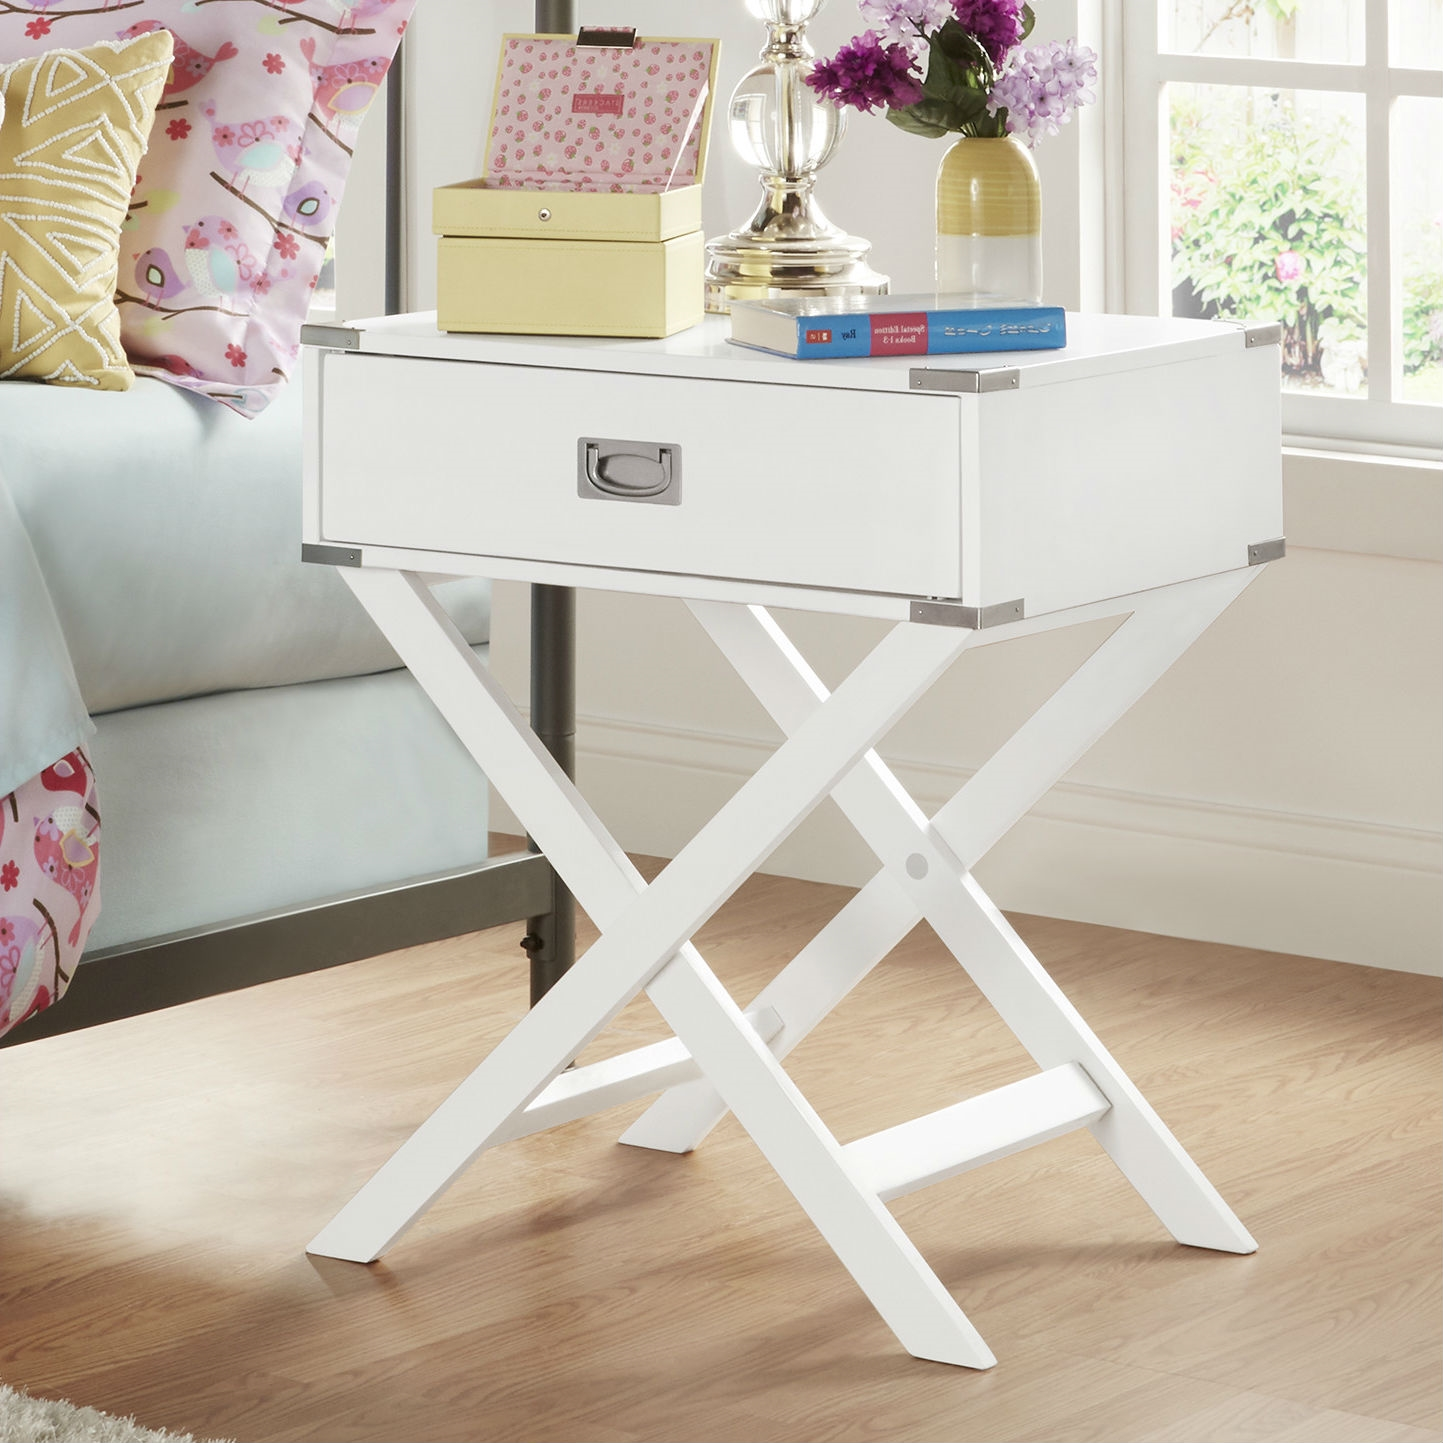 Charmant White Modern Bedroom Decor 1 Drawer Bedside Table Nightstand End Table |  FastFurnishings.com